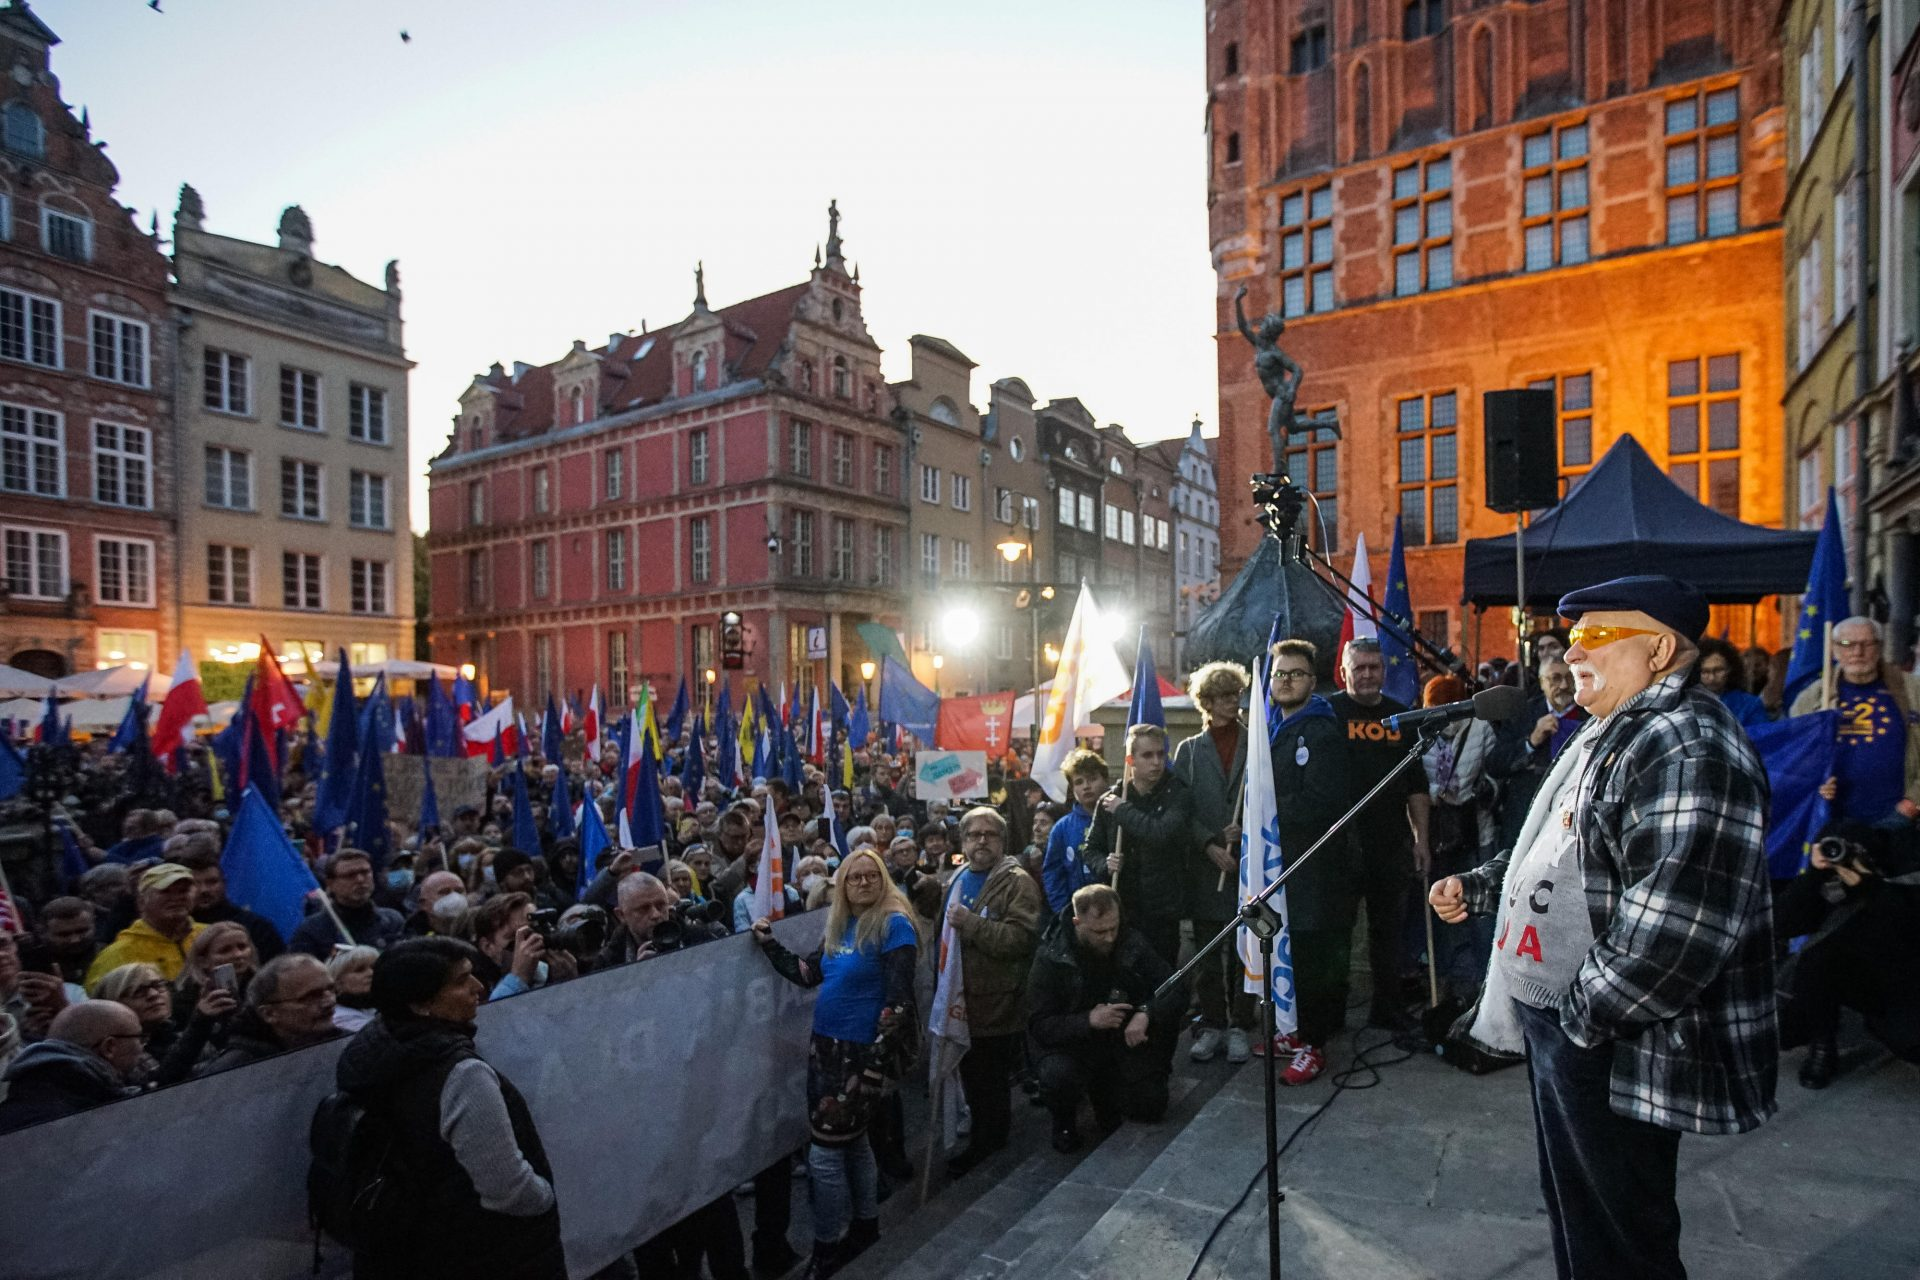 Lech Walesa speaking to a Gdansk crowd carrying EU and Polish flags. Photo: Michal Fludra/NurPhoto via Getty Images